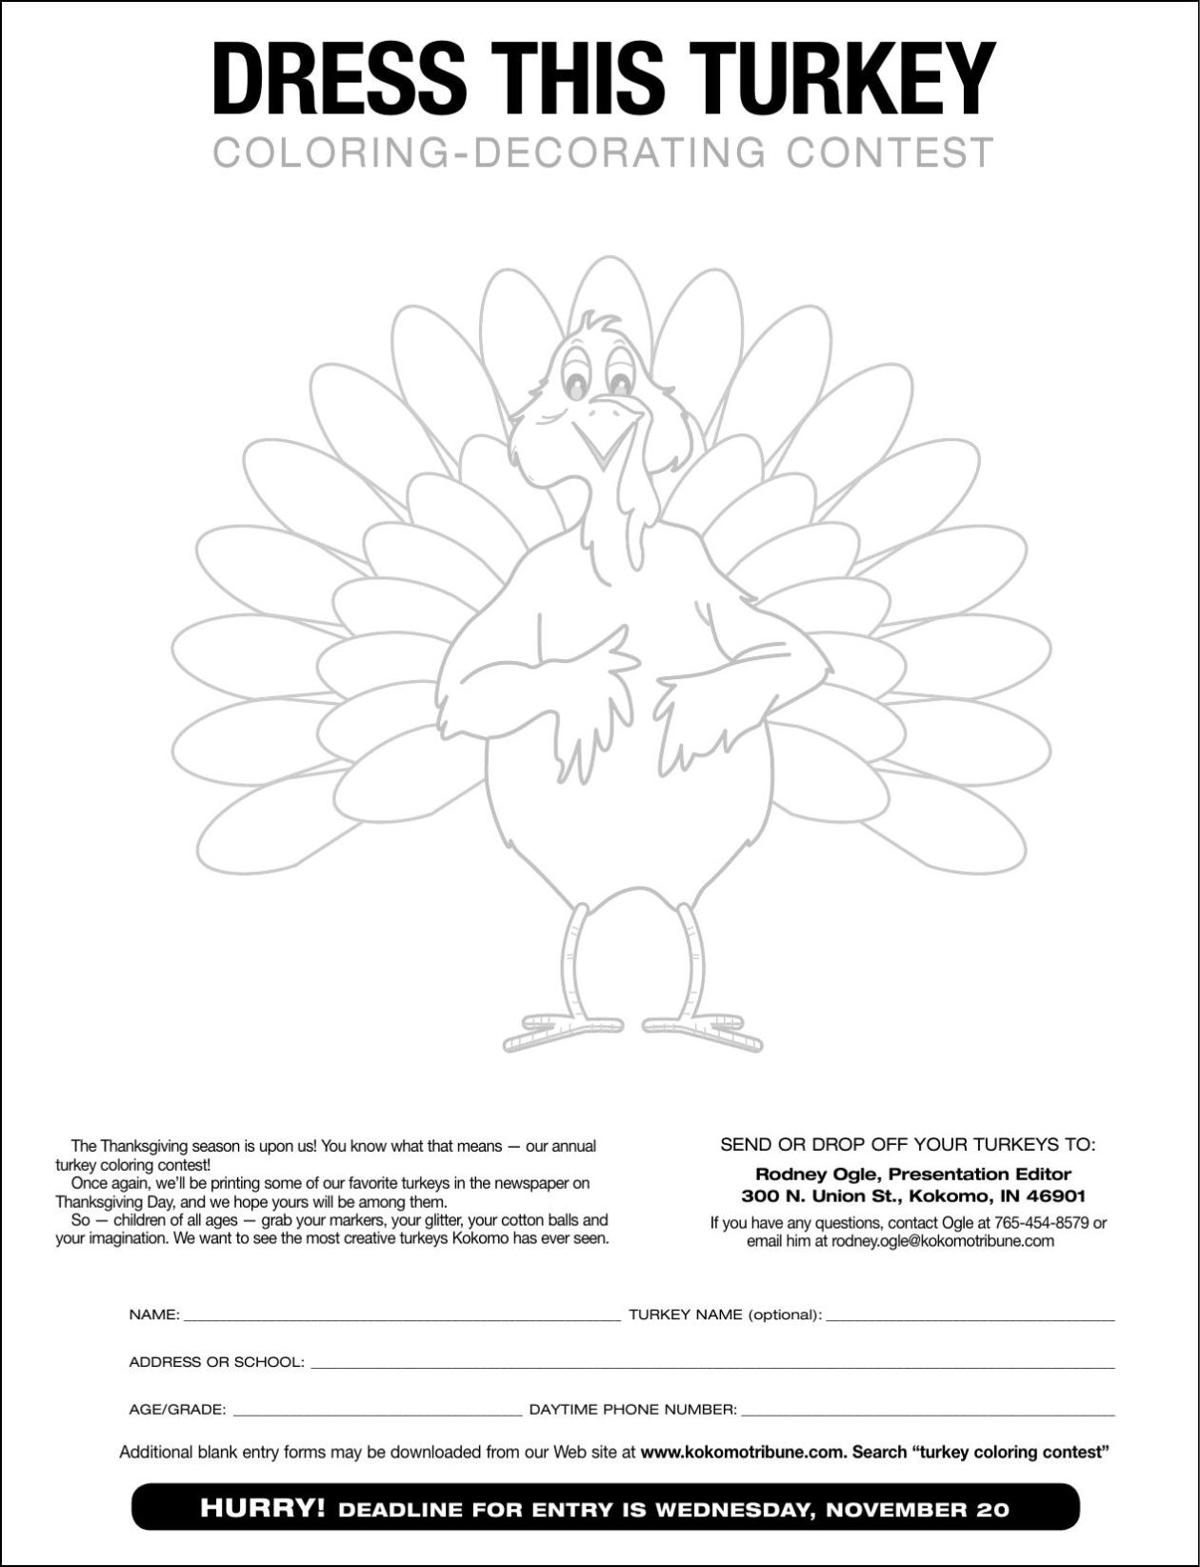 Turkey coloring contest entry 2019.pdf